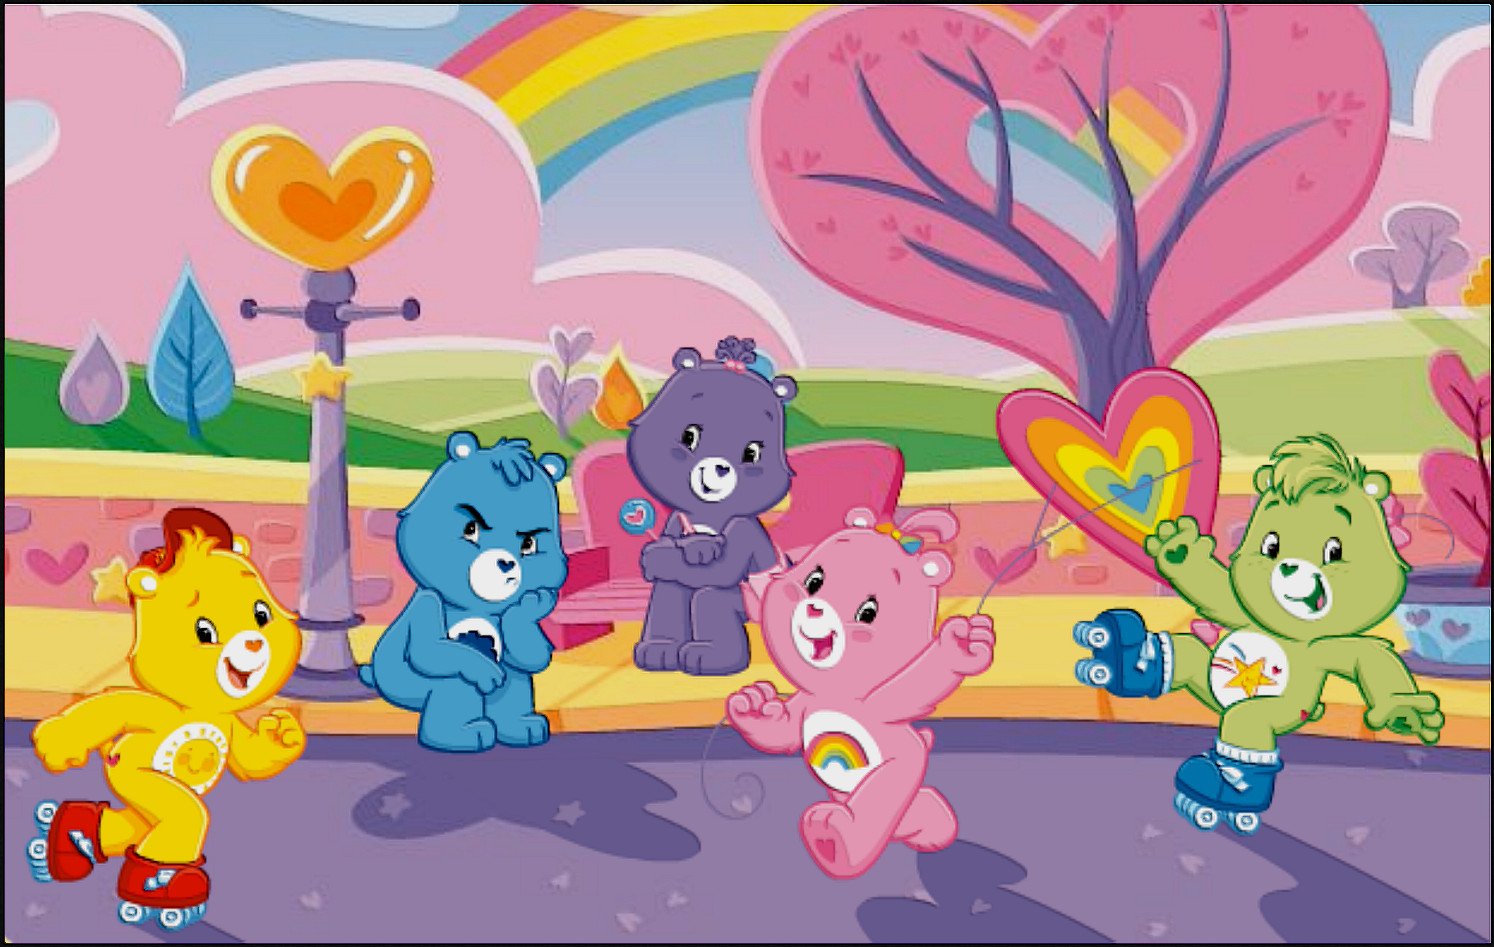 Carebears wallpaper max quality by turbahull on deviantart - Care bears wallpaper ...